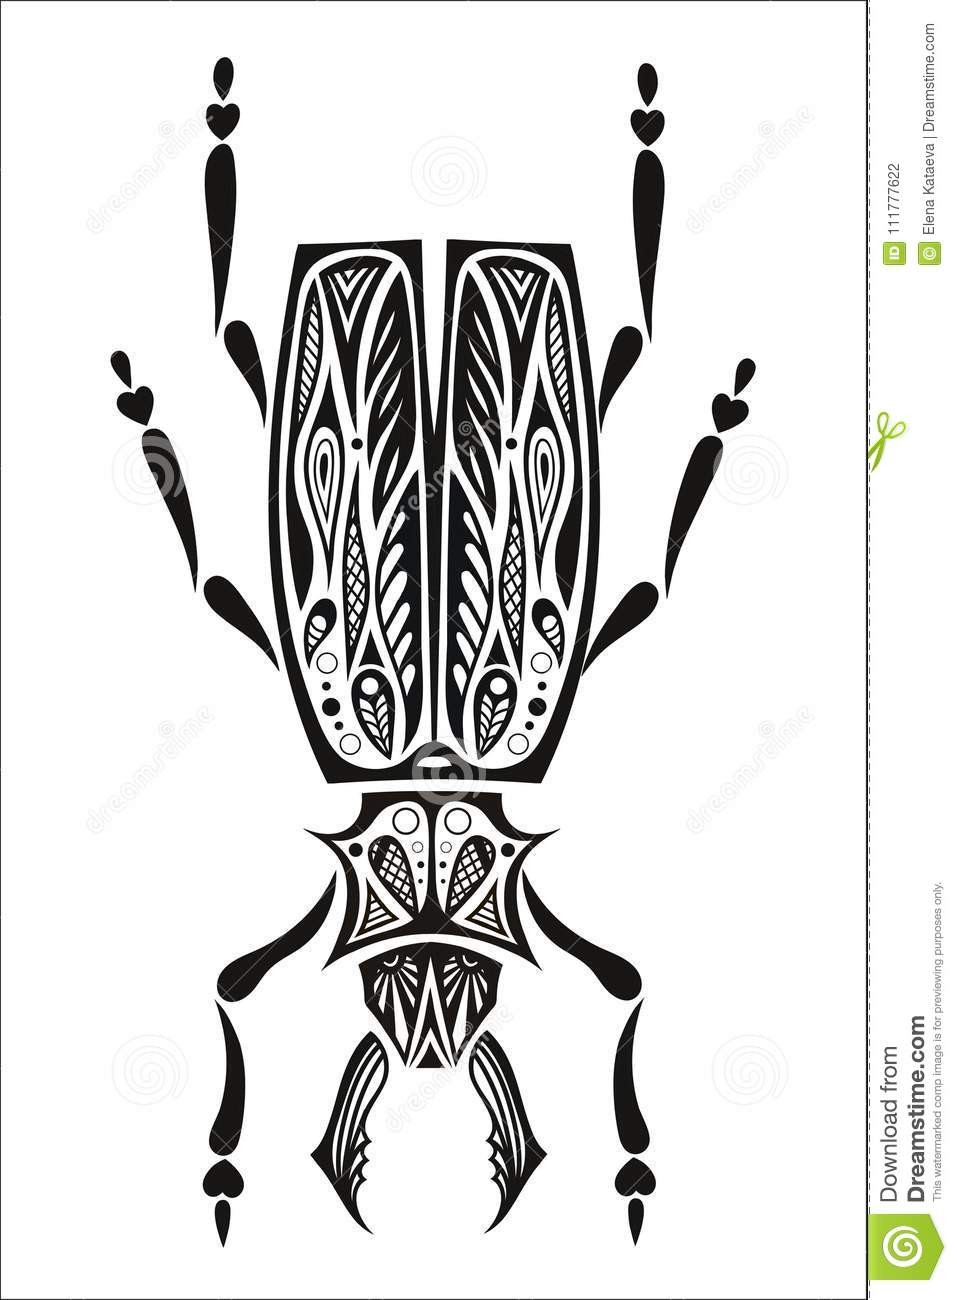 Beetle bug insect isolated on white background vecto